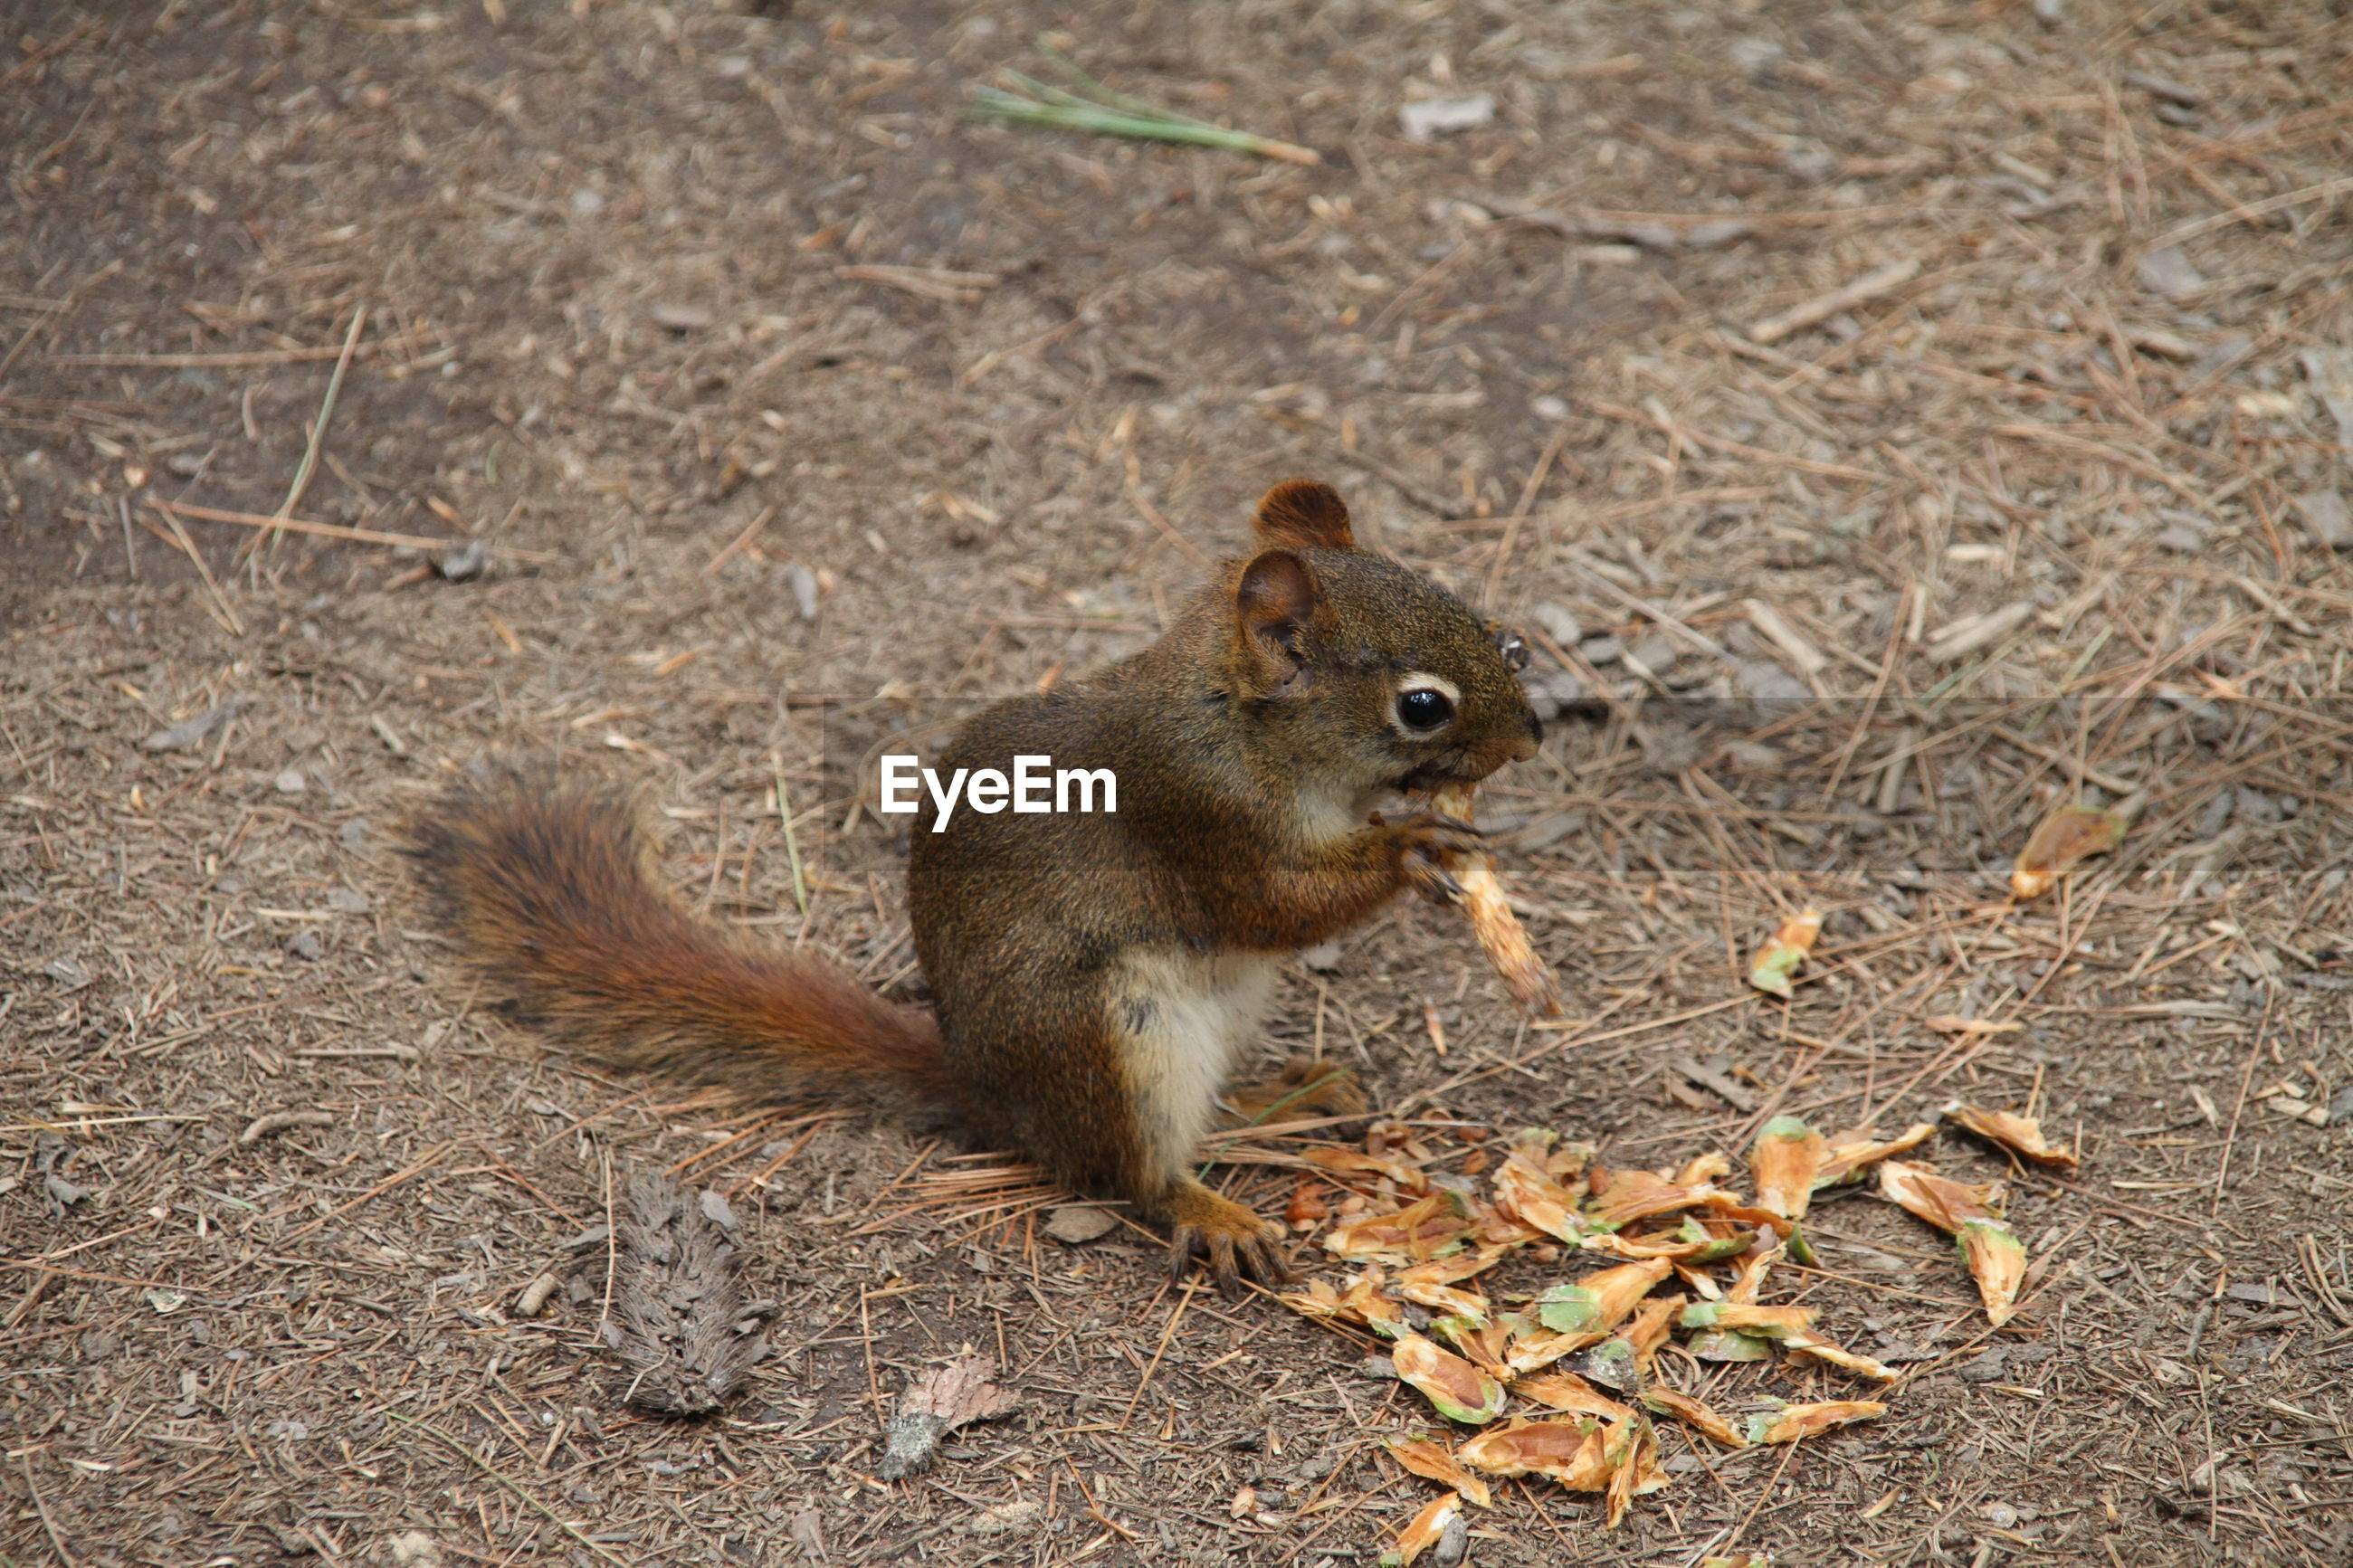 HIGH ANGLE VIEW OF SQUIRREL ON GROUND